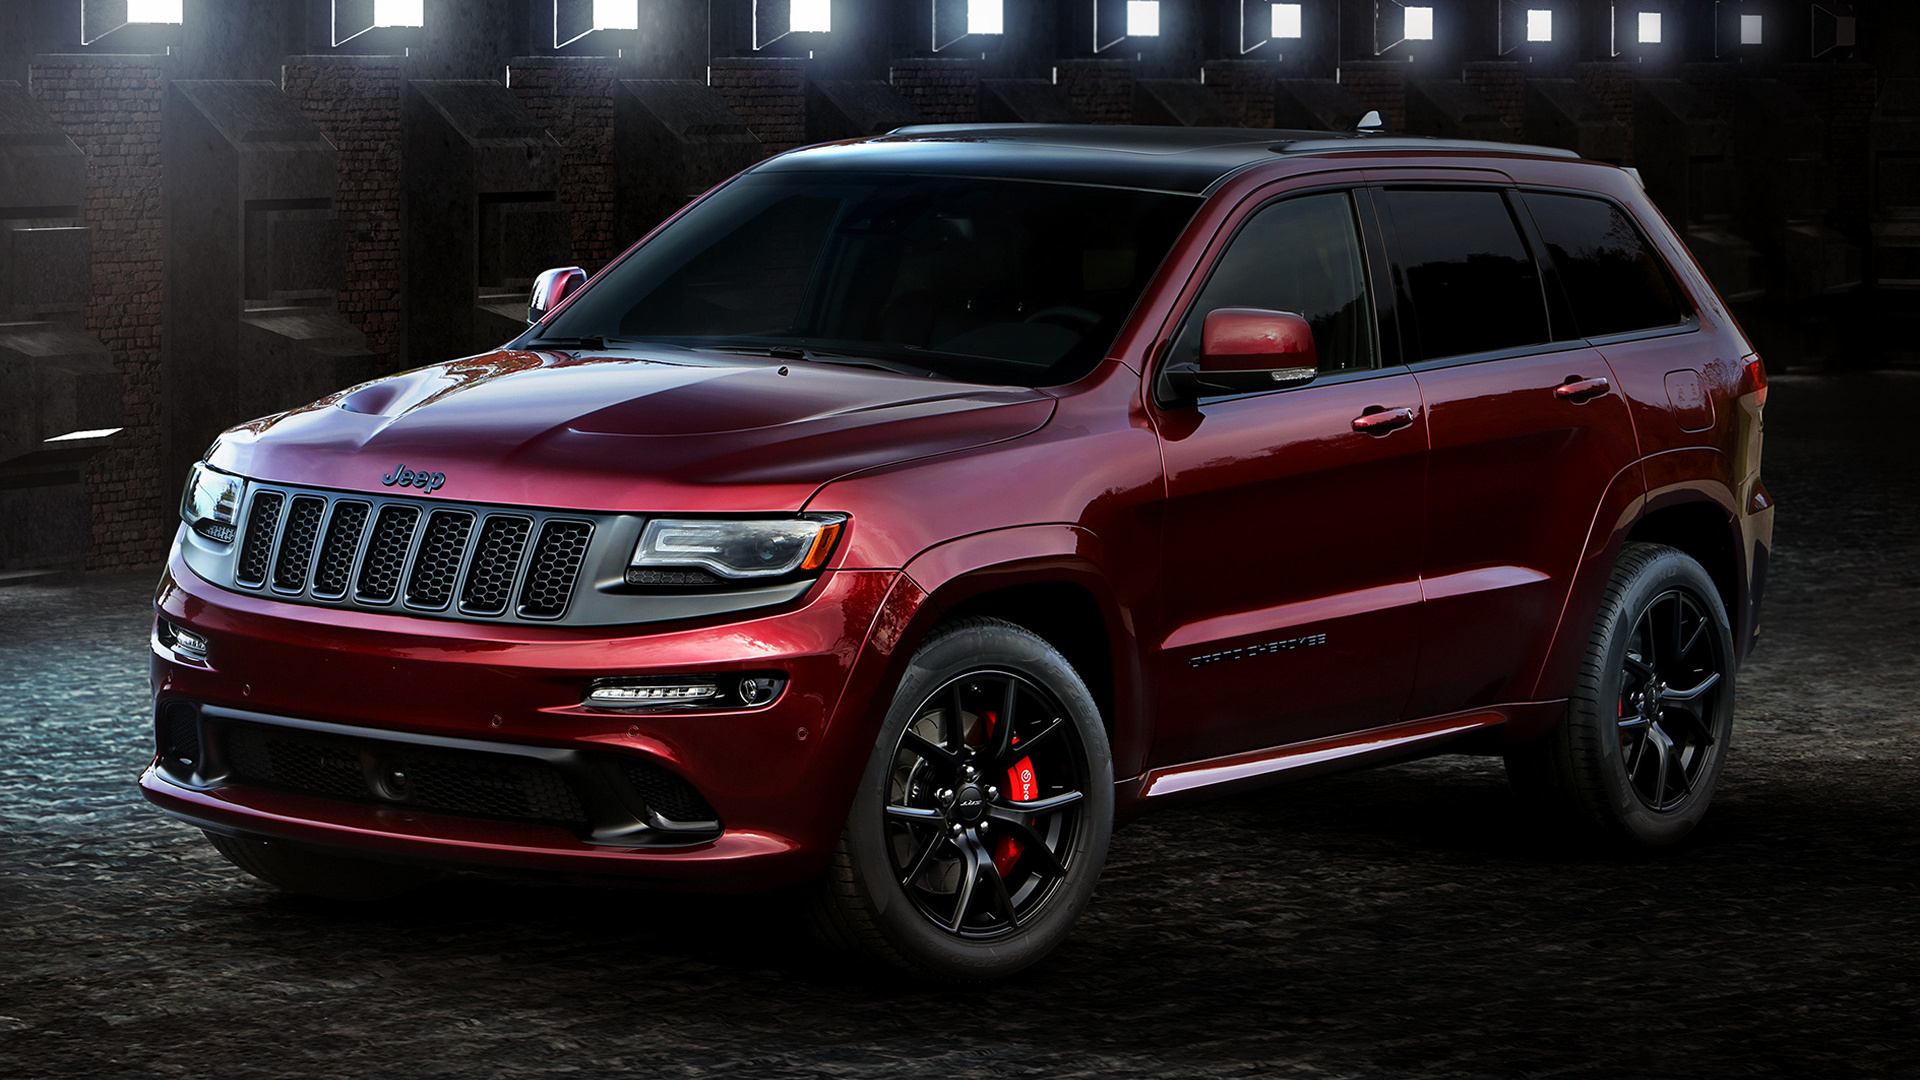 Crown Chrysler Dodge Jeep Ram >> Jeep Grand Cherokee SRT Night (2016) Wallpapers and HD Images - Car Pixel